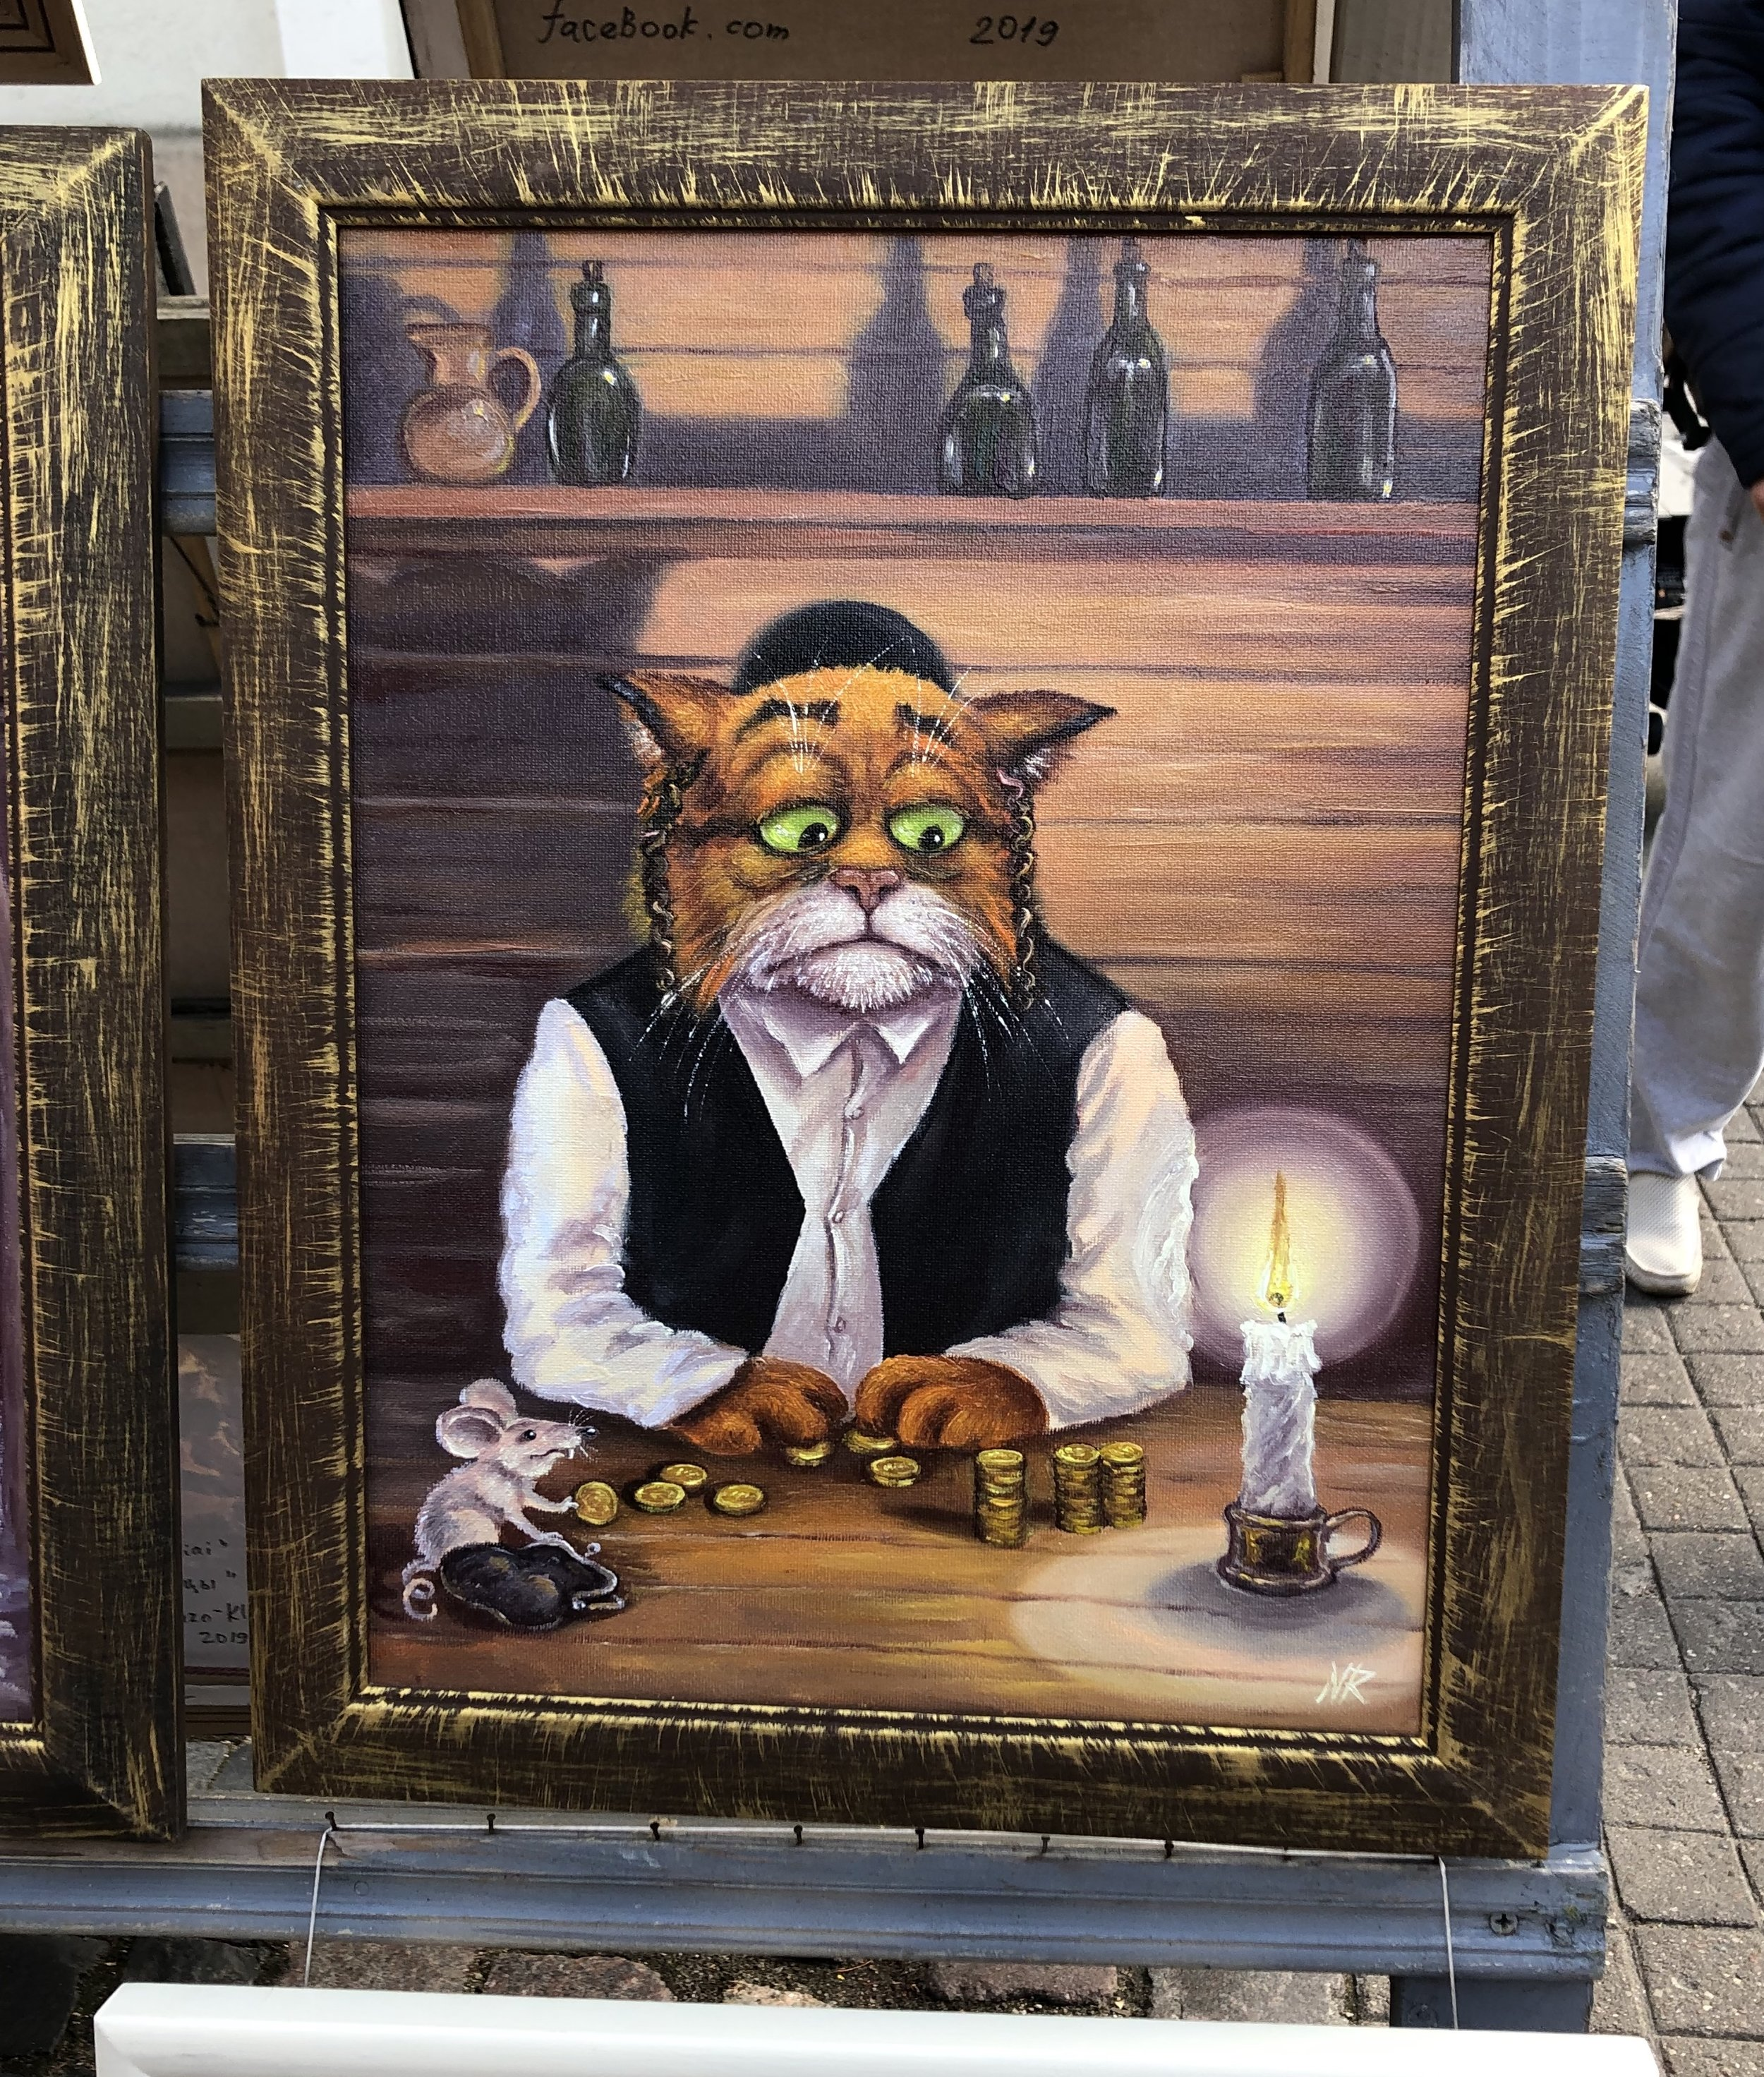 On a walk back to the hotel we came upon this disturbing anti-semitic painting being sold in an open air market in the old town of Vilnius. Moments such as this taint the moments of joy we experienced. To me, this proves that our work is never done until all hatred is eradicated.